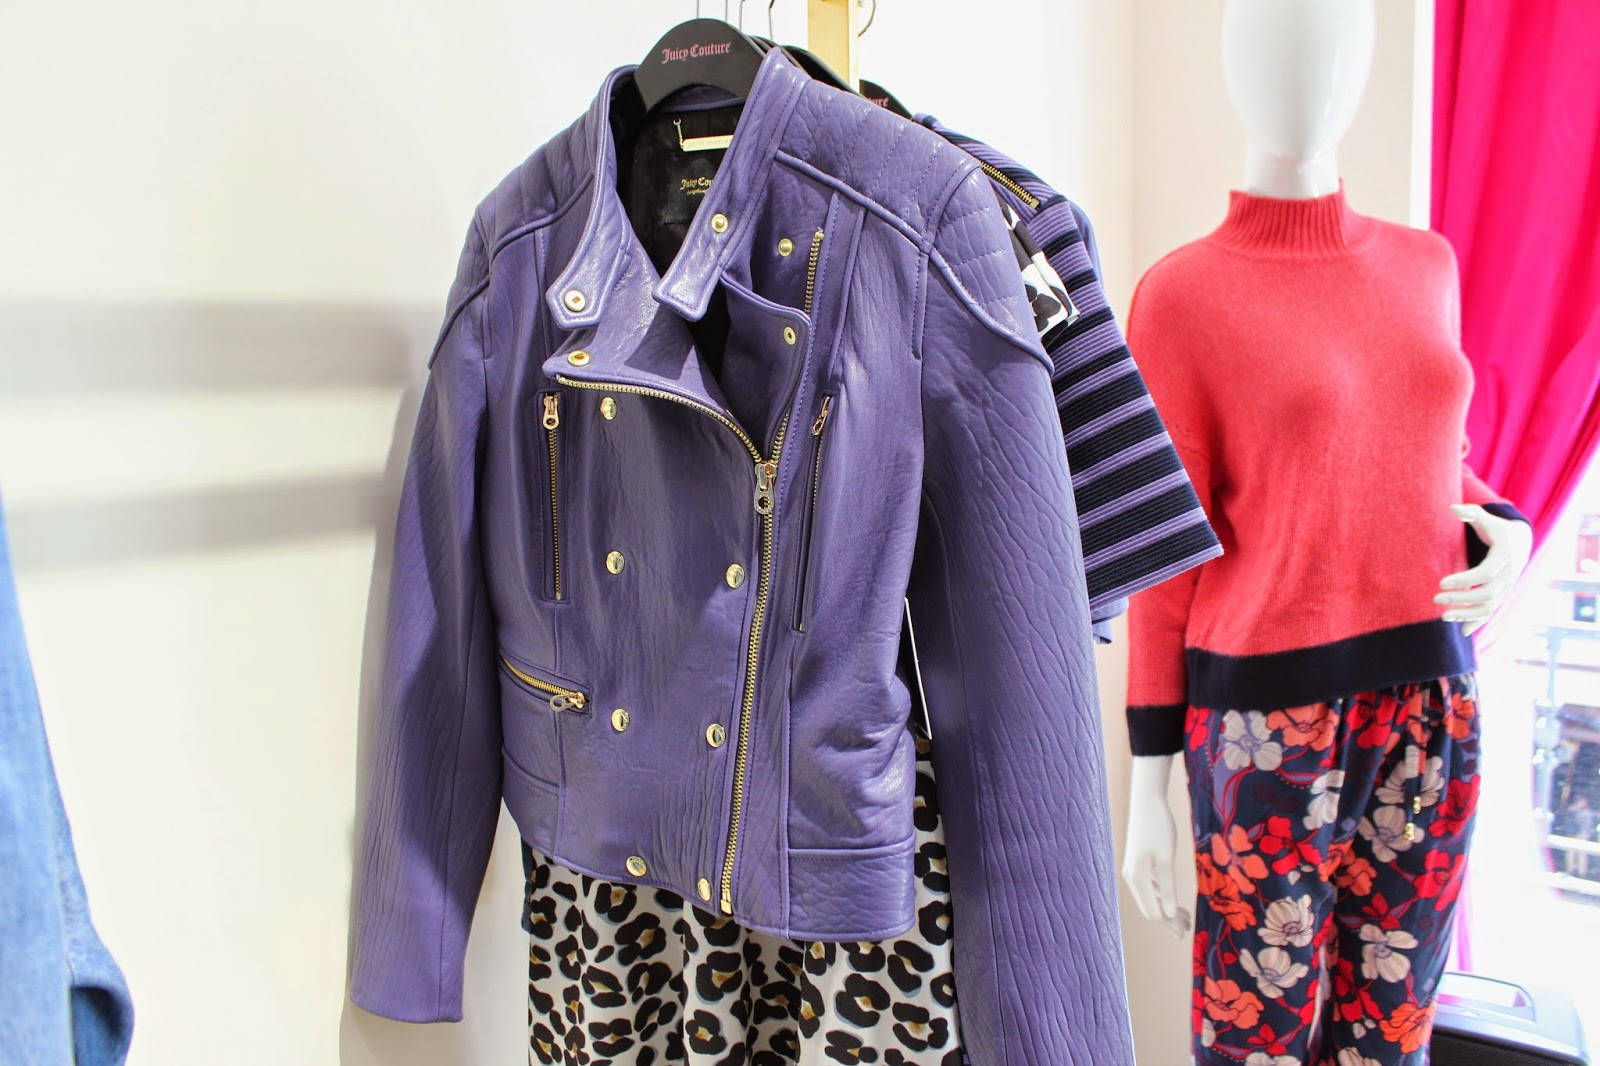 georgie-georgina-minter-brown-fashion-blogger-actress-juicy-couture-press-day-fall-2015-clothes-new-style-leather-purple-jacket